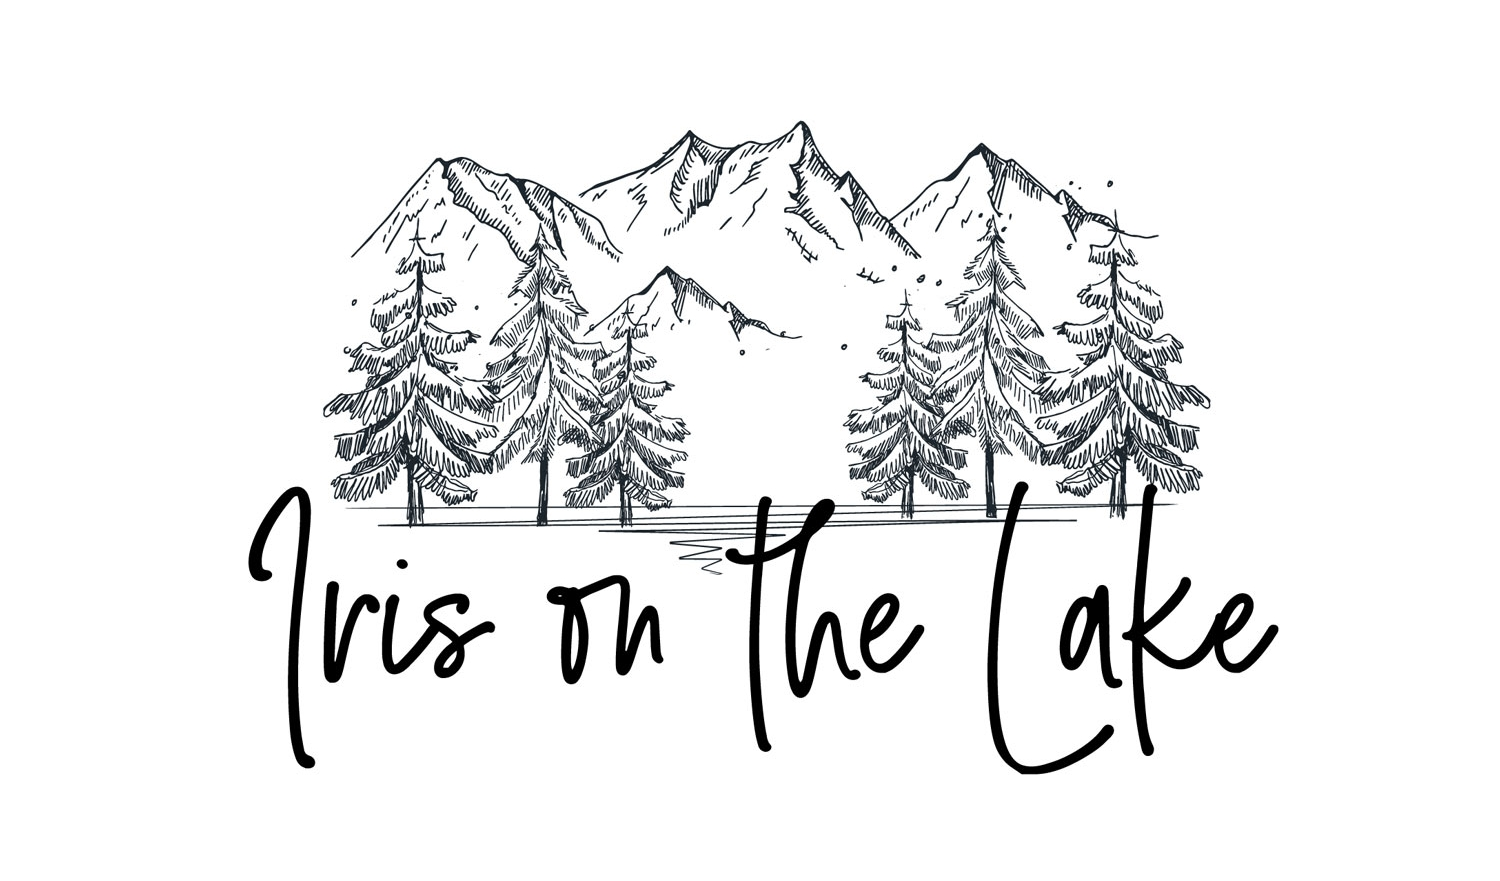 Iris-on-the-Lake-logo